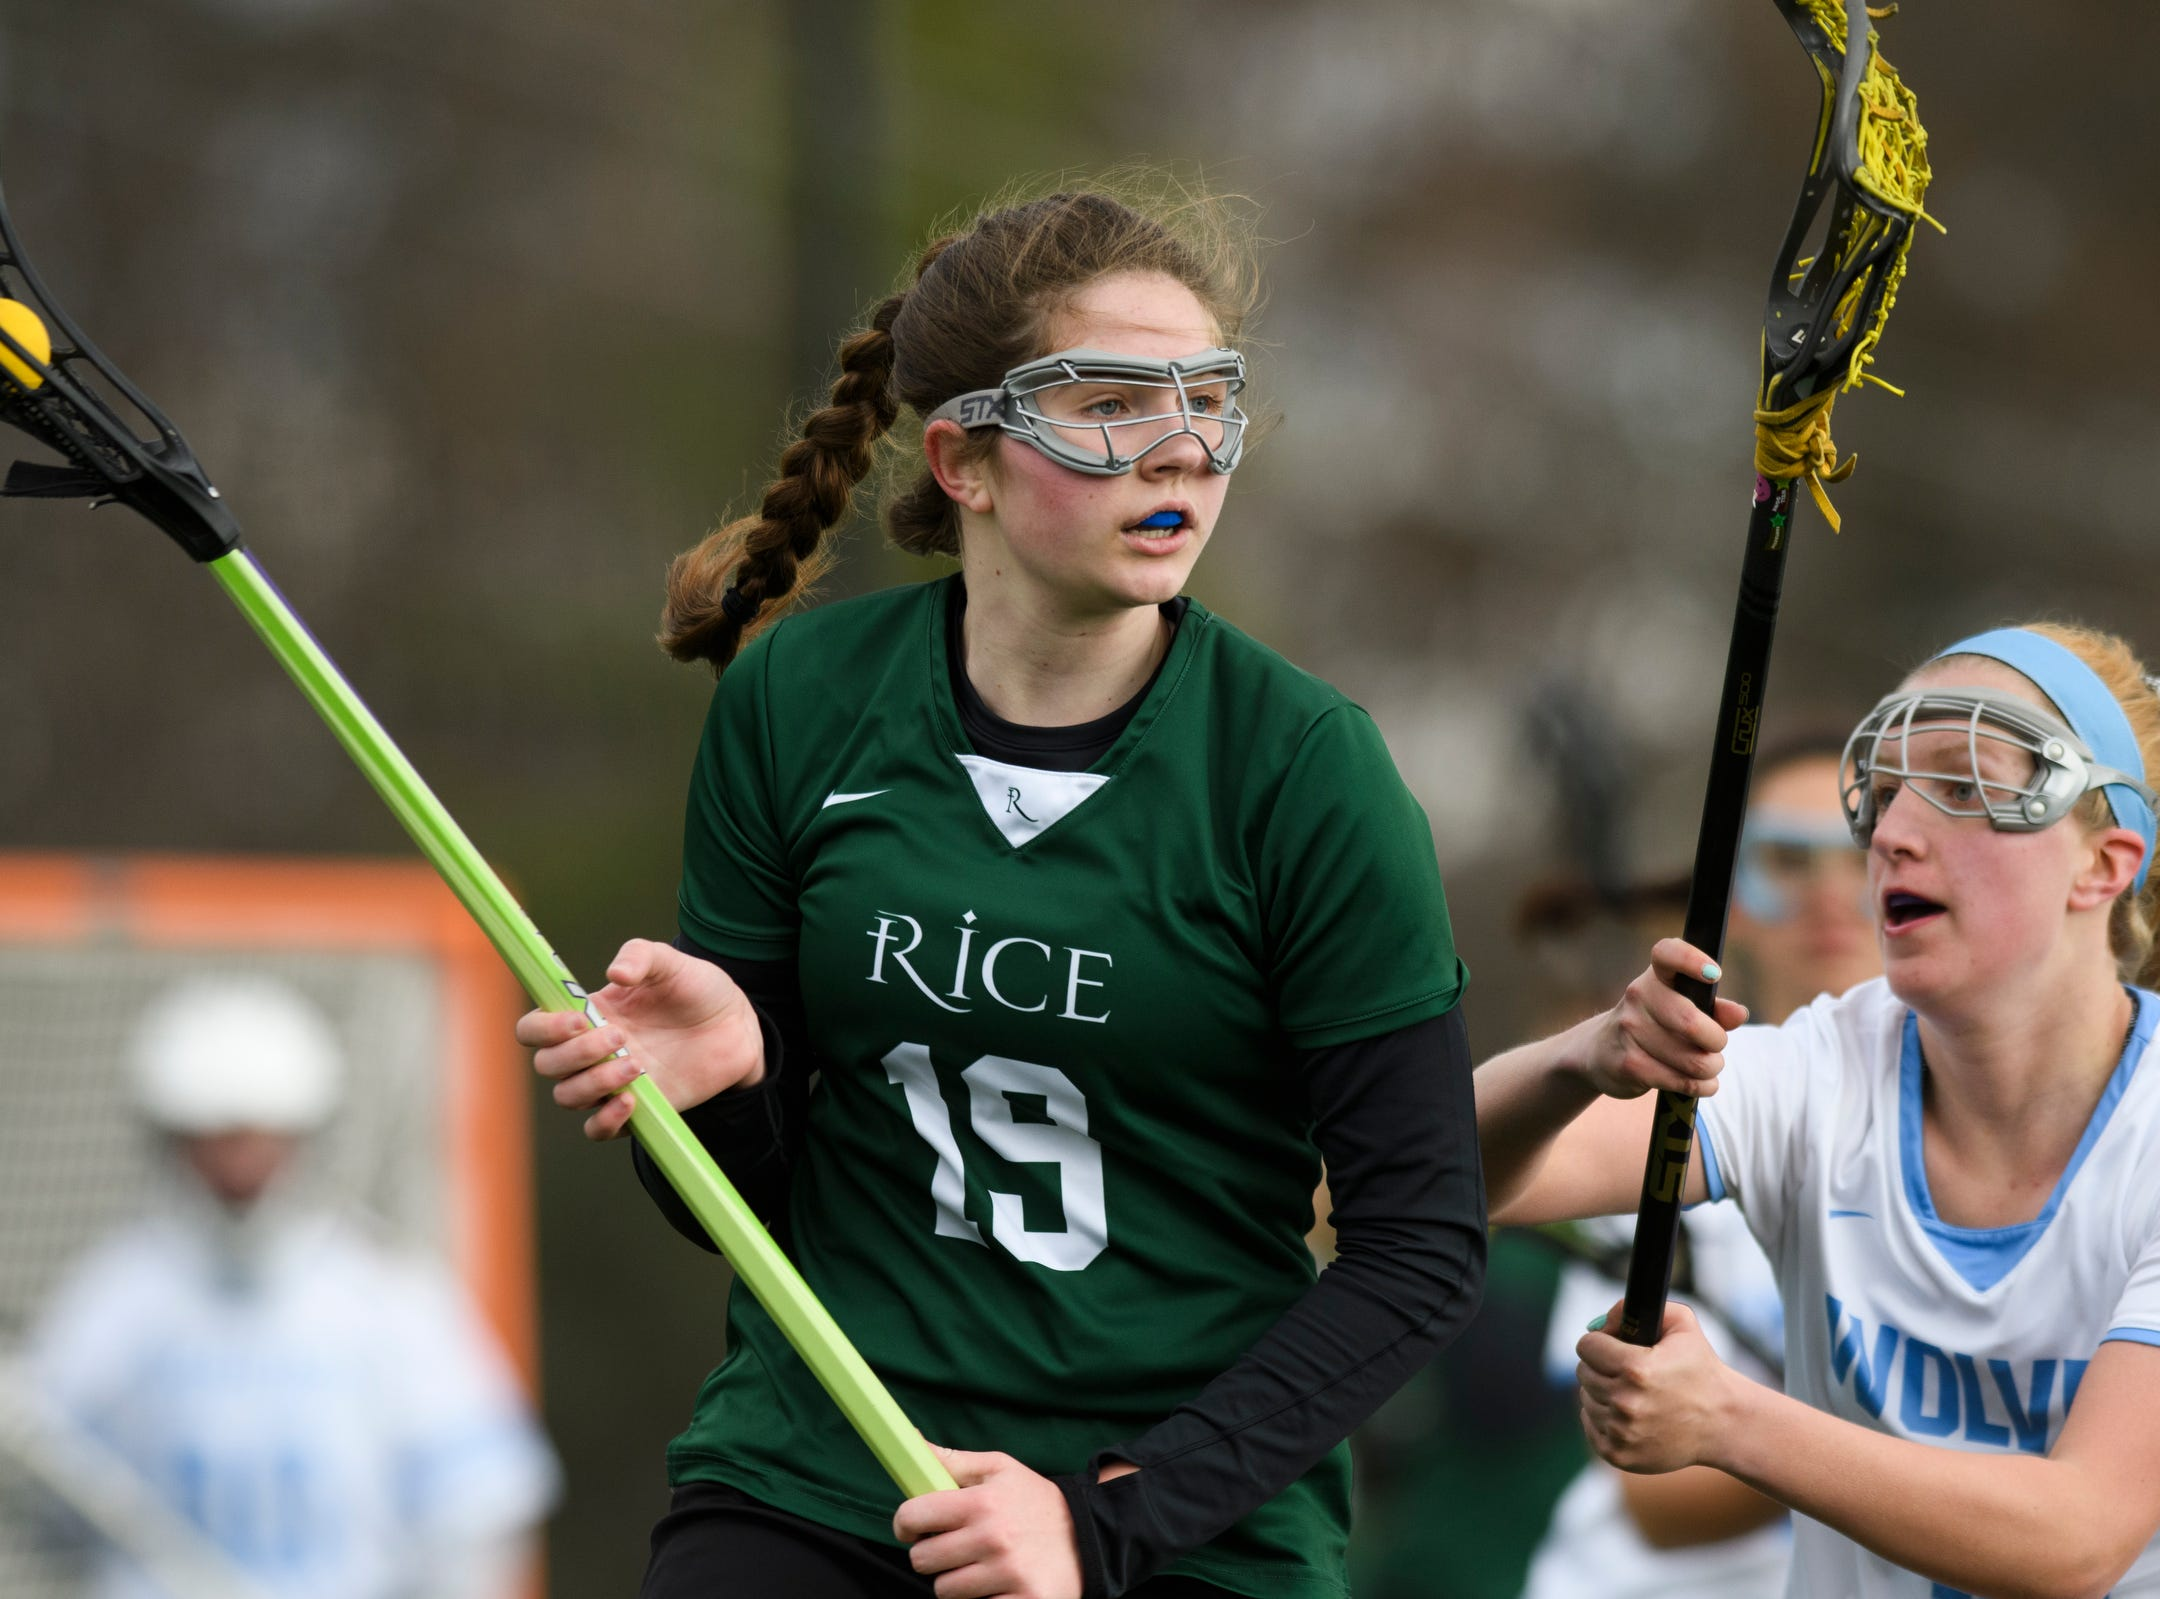 Rice's Sarah Holmes (19) runs with the ball during the girls lacrosse game between the Rice Green Knights and the South Burlington Wolves at South Burlington High School on Tuesday afternoon April 16, 2019 in South Burlington, Vermont.